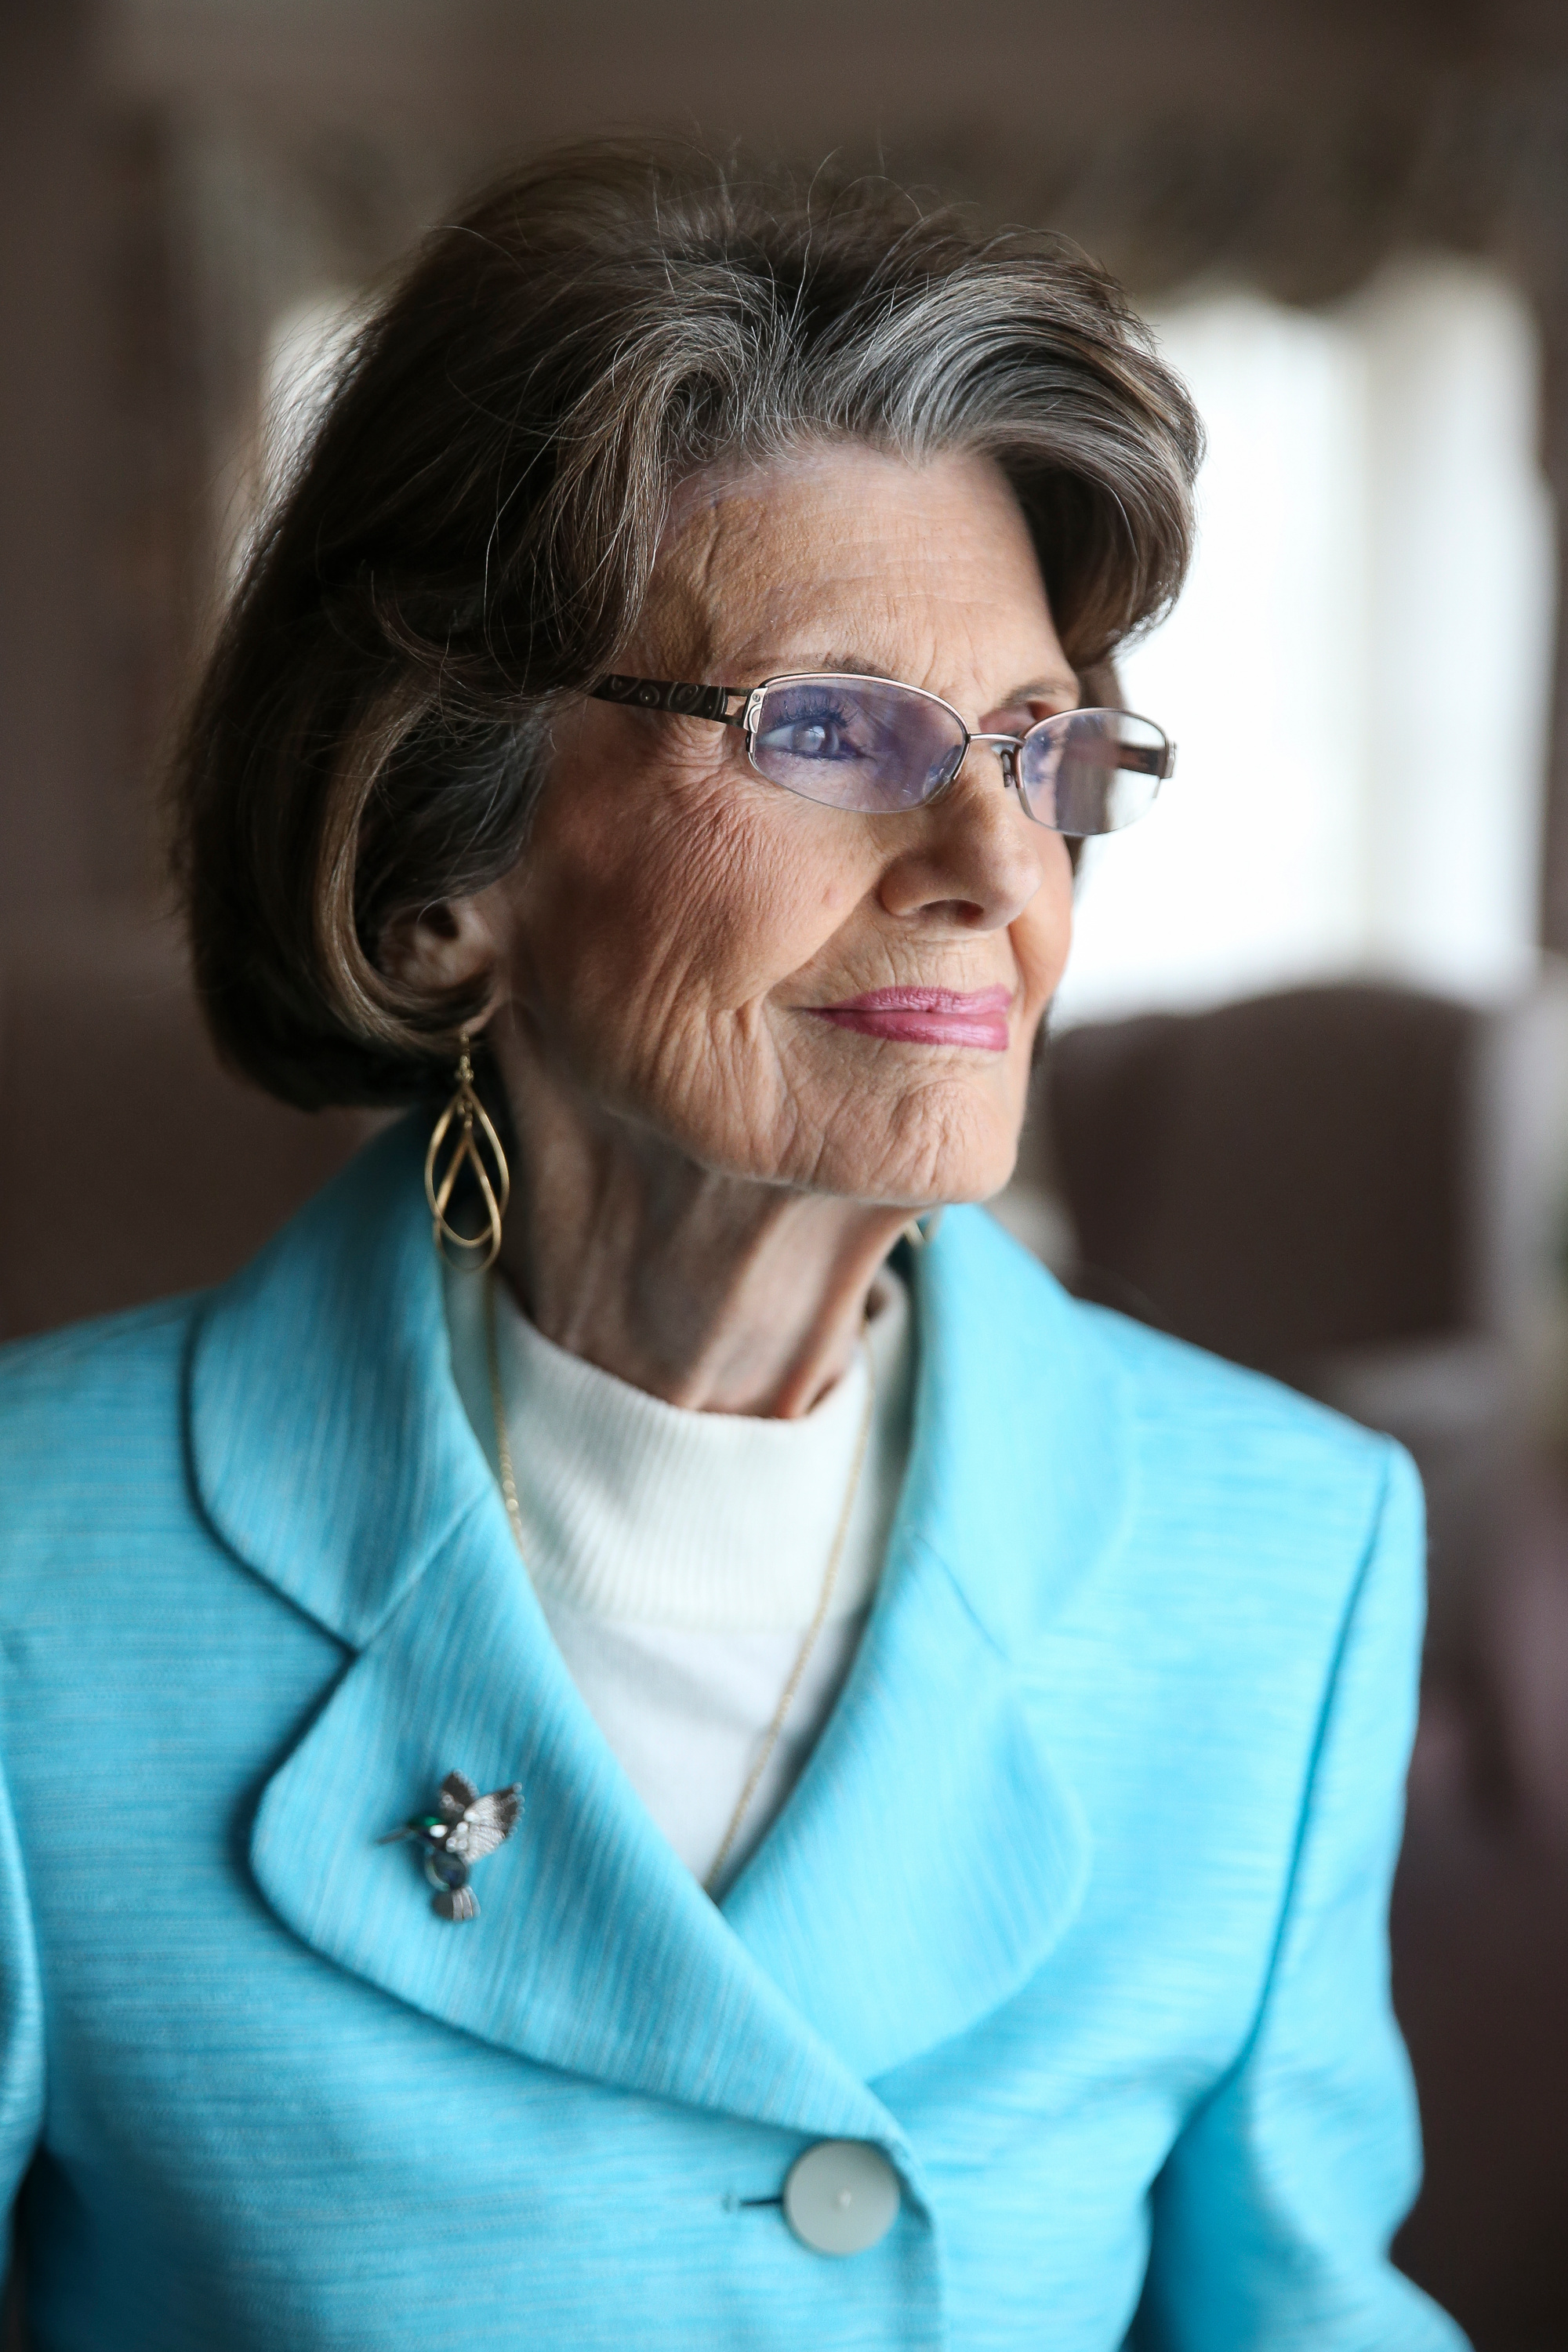 Former LDS Young Women General President Ardeth G. Kapp poses for a photo at her home in Bountiful on Thursday, Jan. 11, 2018.